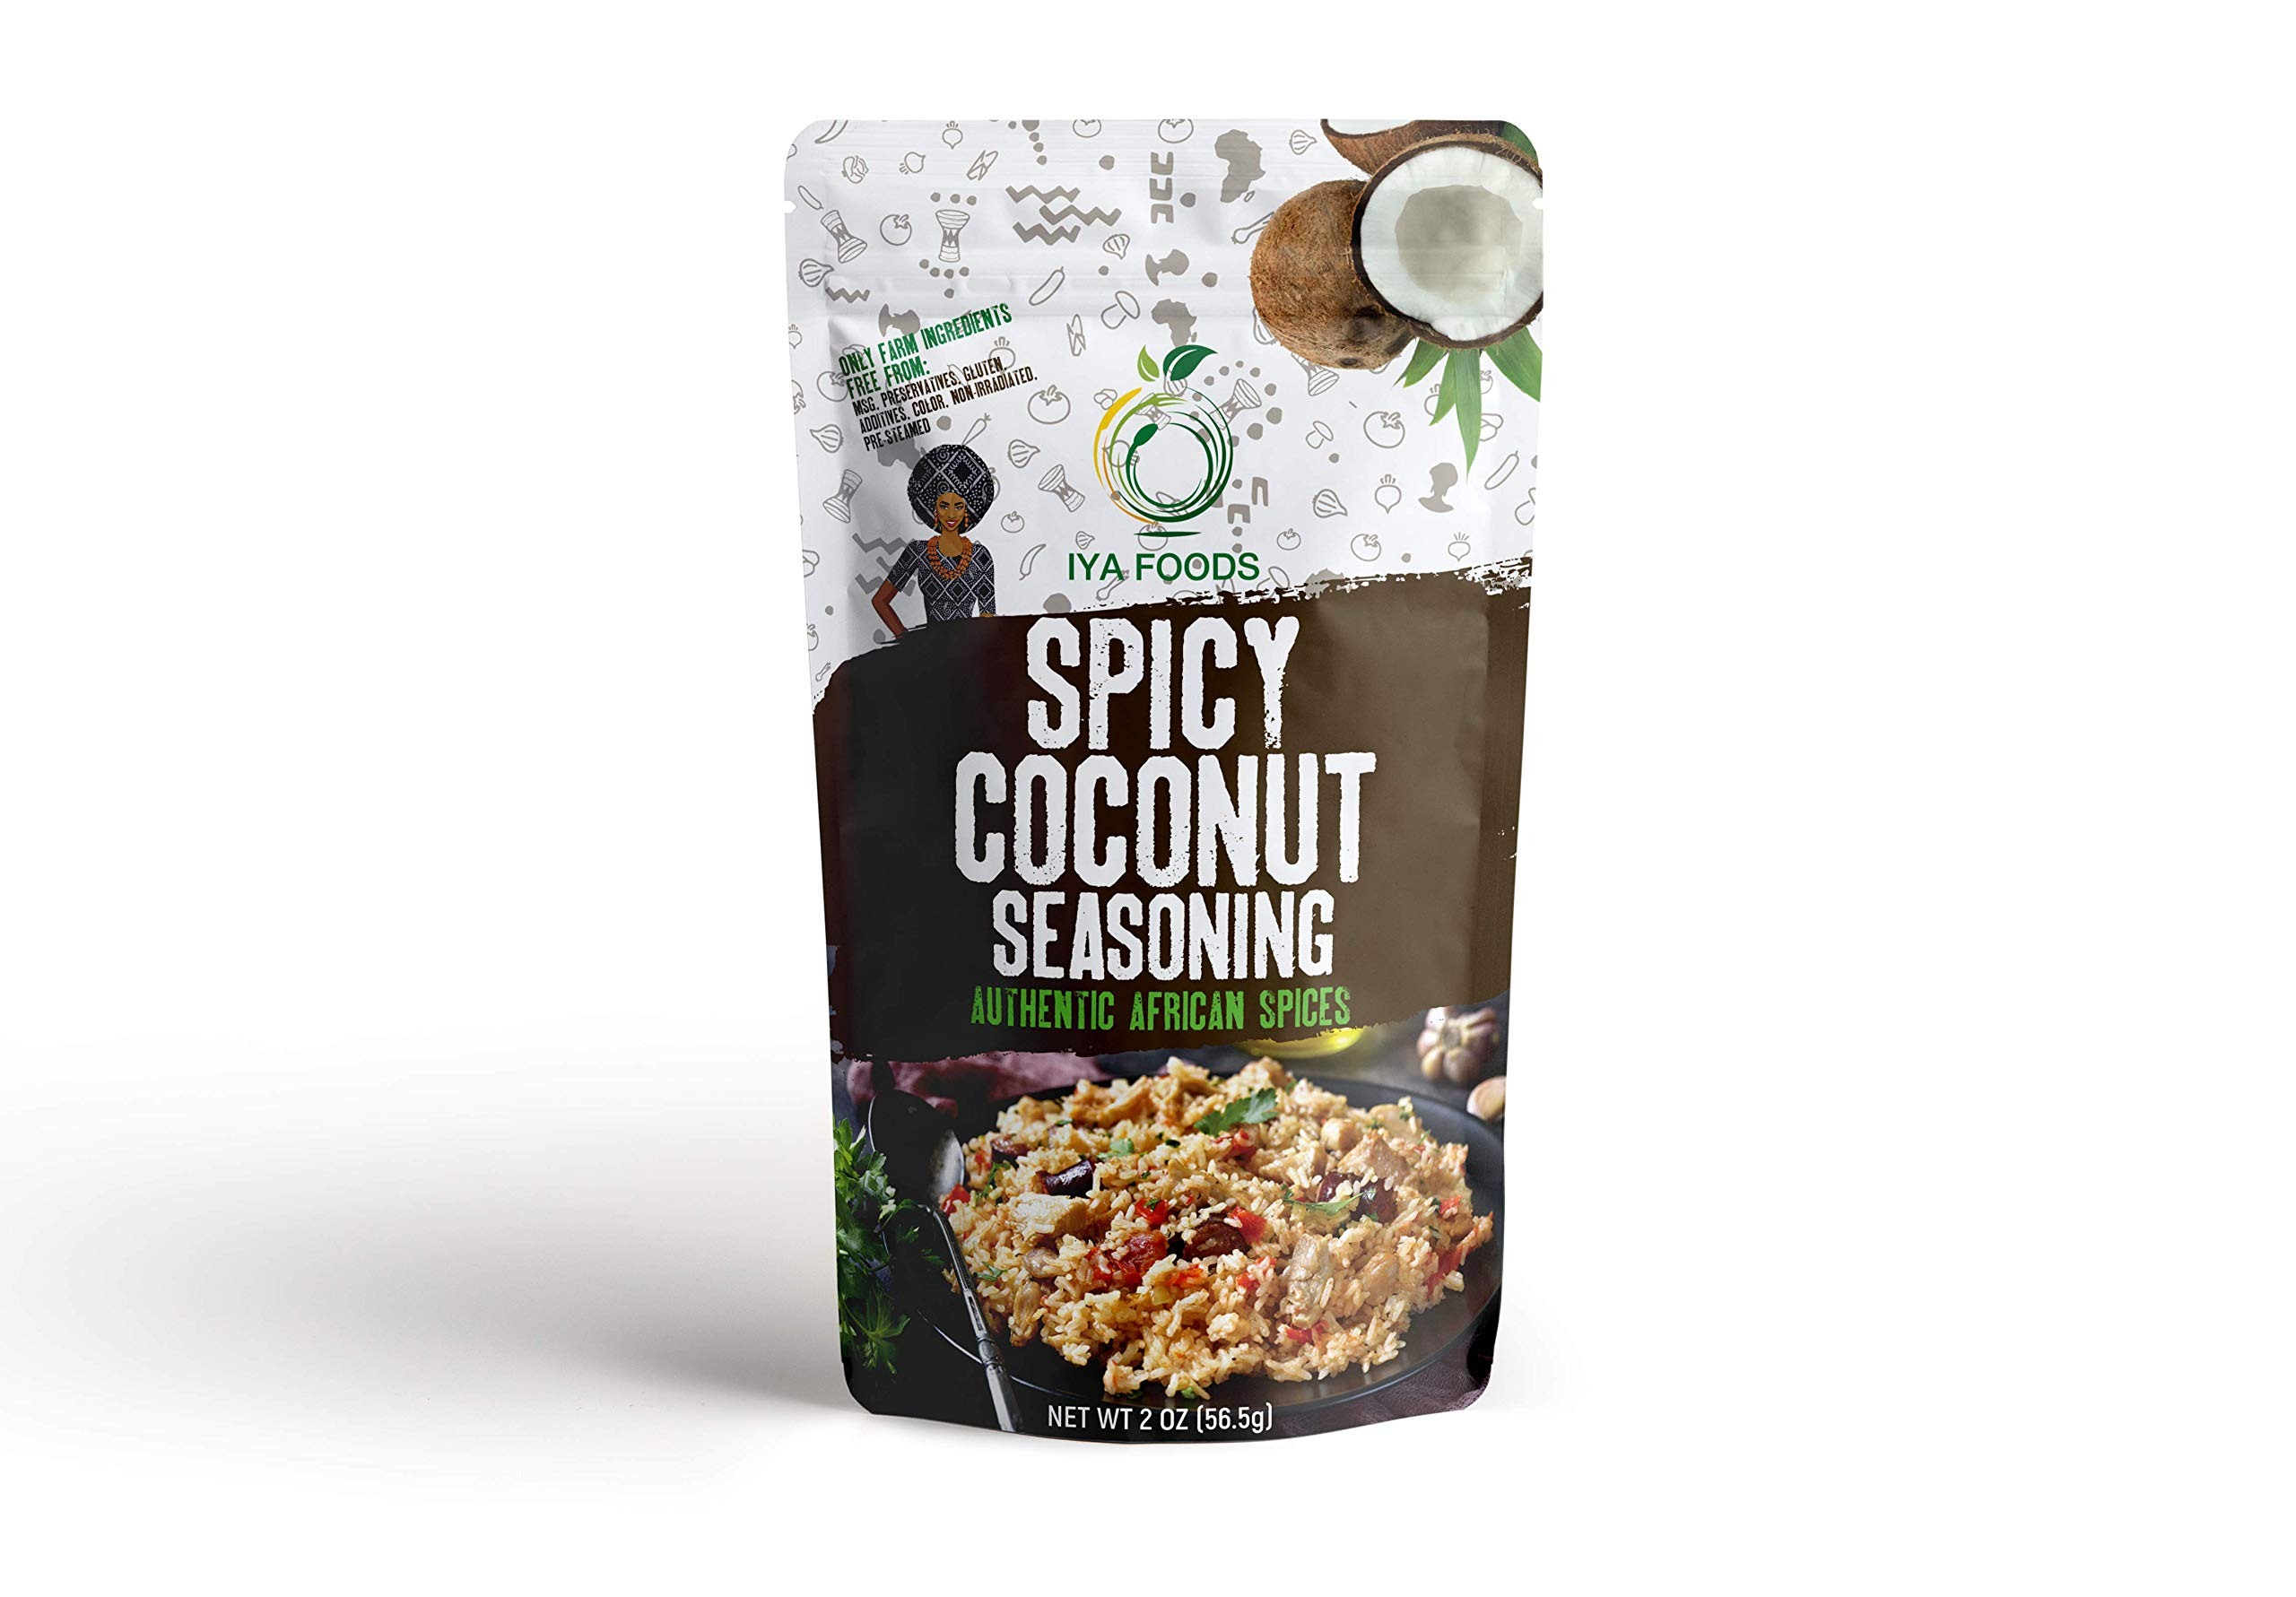 Iya Foods Spicy Coconut Seasoning 5 oz Bag Made with Real Coconuts, Herbs & Peppers. Free from MSG or Anything Artificial. Delicious, Authentic Burst of Coconutty Goodness, Top Seller.